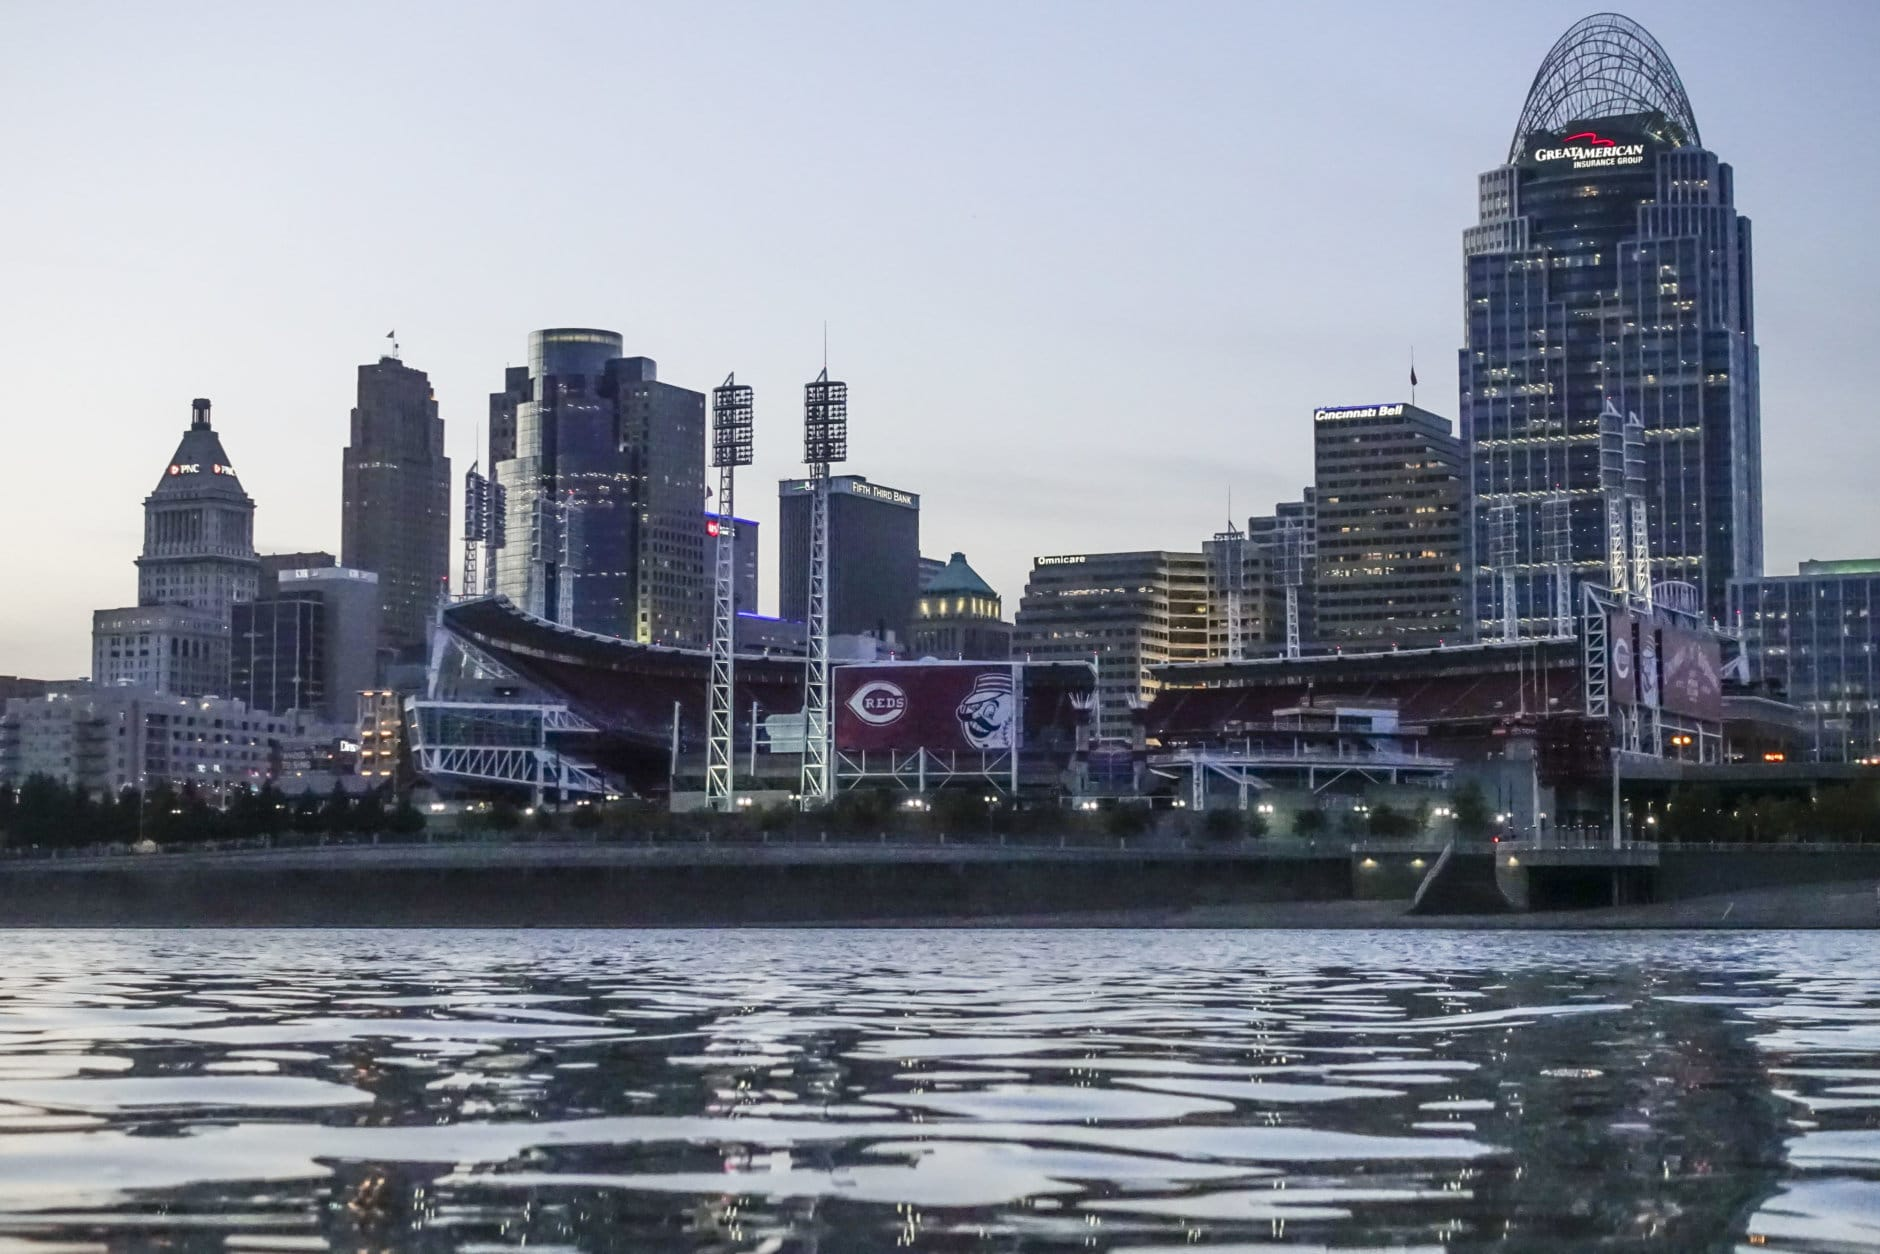 Great American Ballpark, home to Major League Baseball's Cincinnati Reds, stands on the banks of the Ohio River, Wednesday, Oct. 4, 2017, in downtown Cincinnati. (AP Photo/John Minchillo)